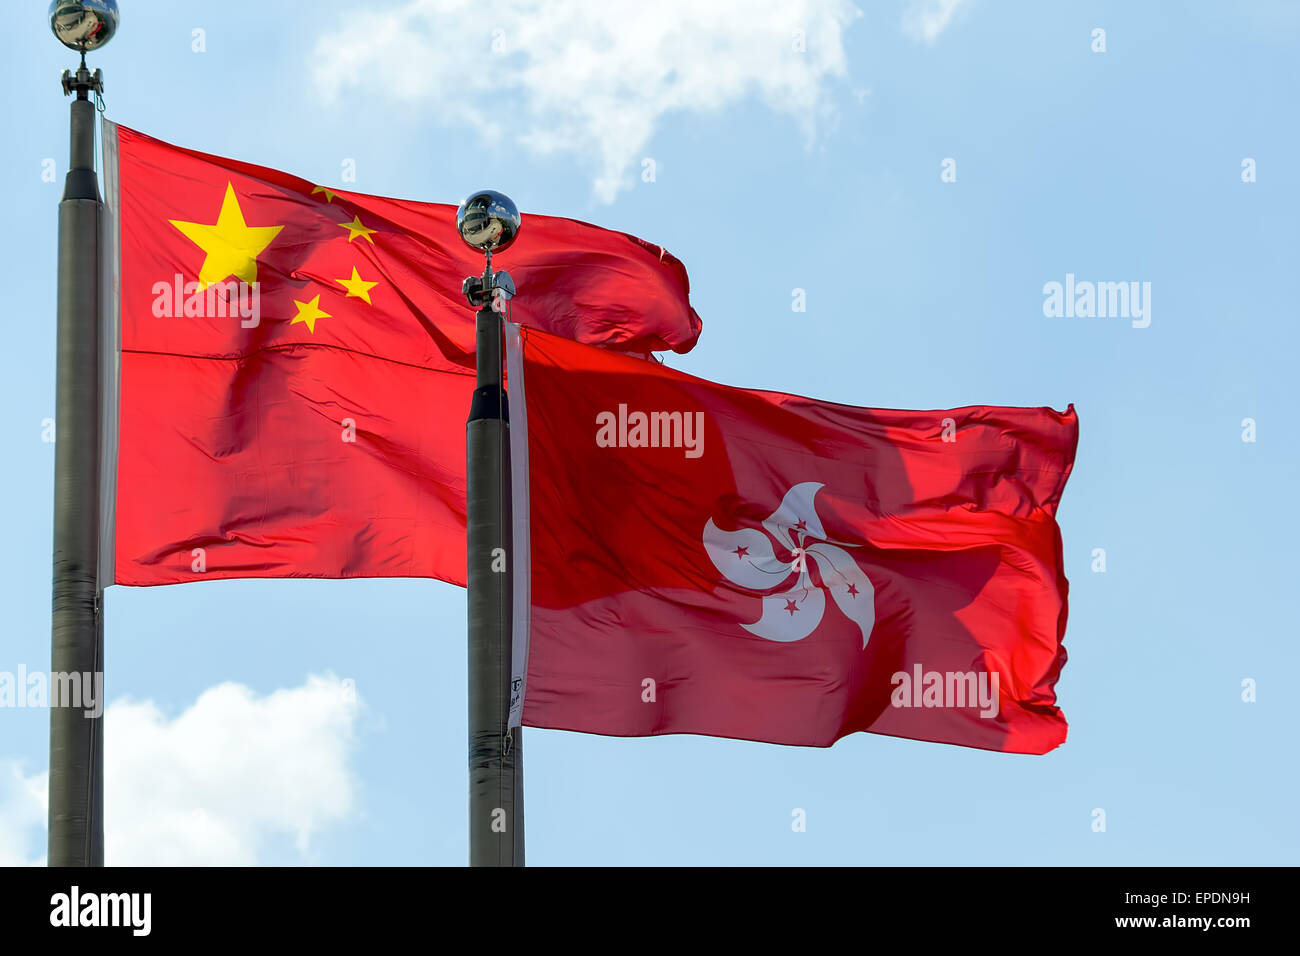 Hong Kong and Peoples Republic of China Flags Flying Side by Side Against Blue Sky - Stock Image